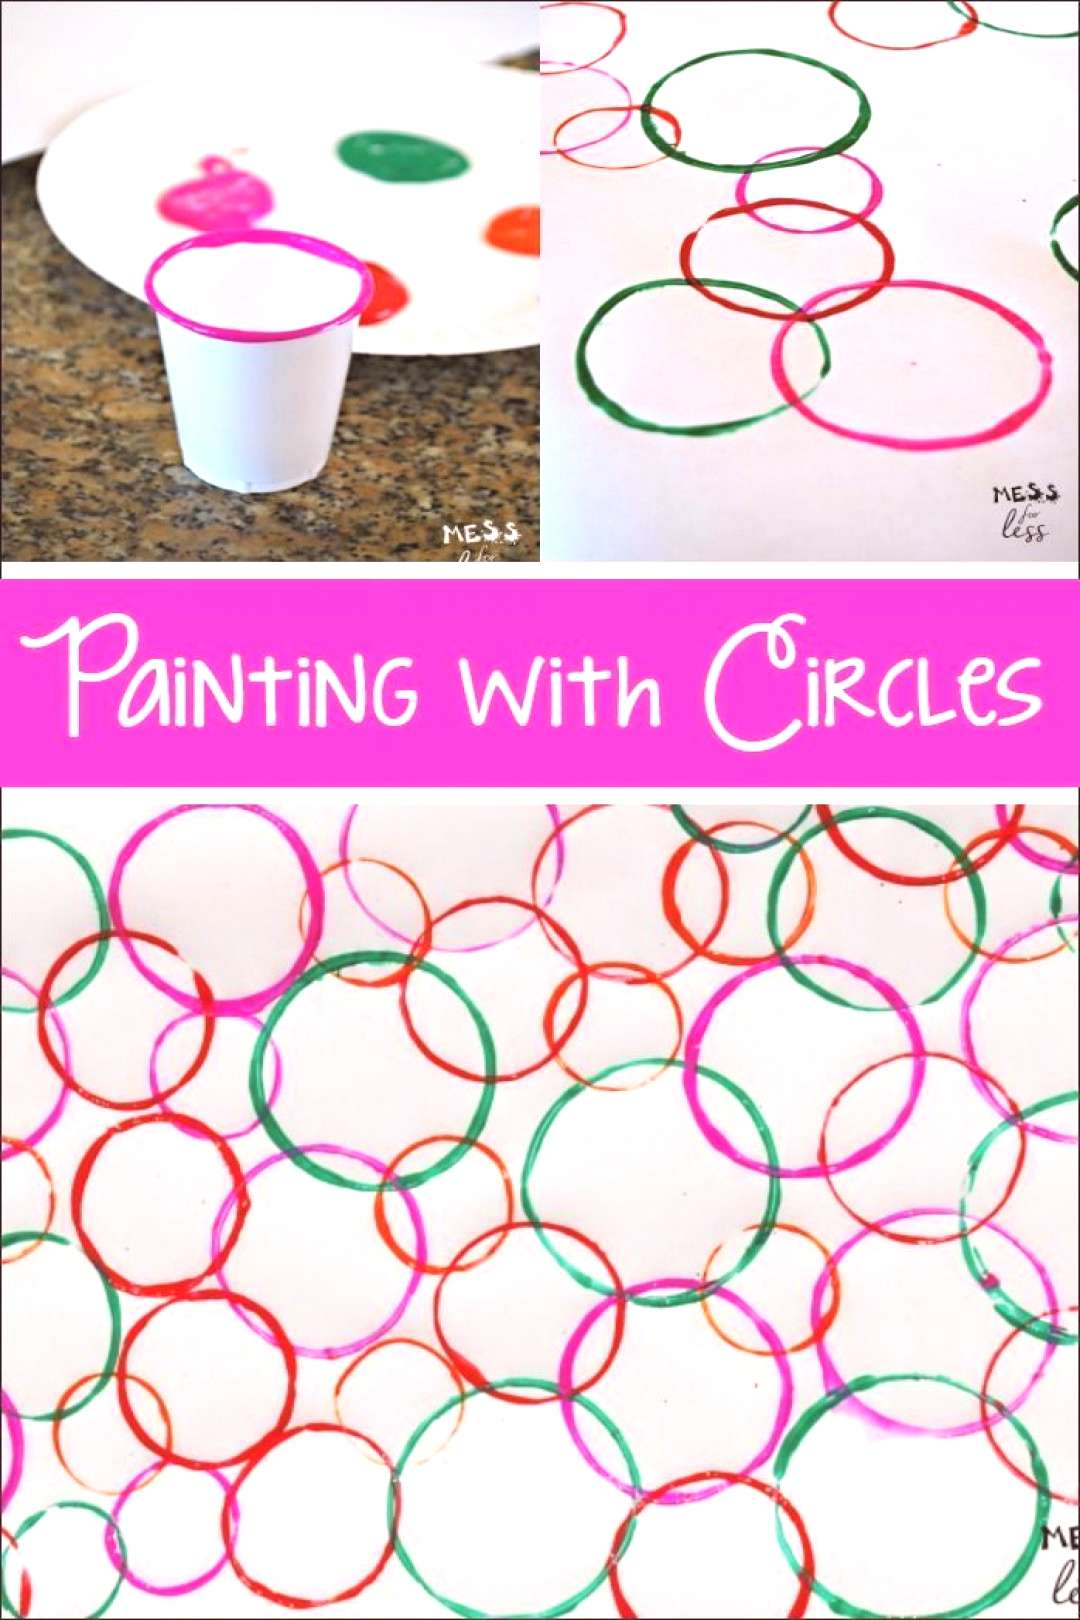 Your kids will be surprised when they see the eye catching art they can create when painting with c